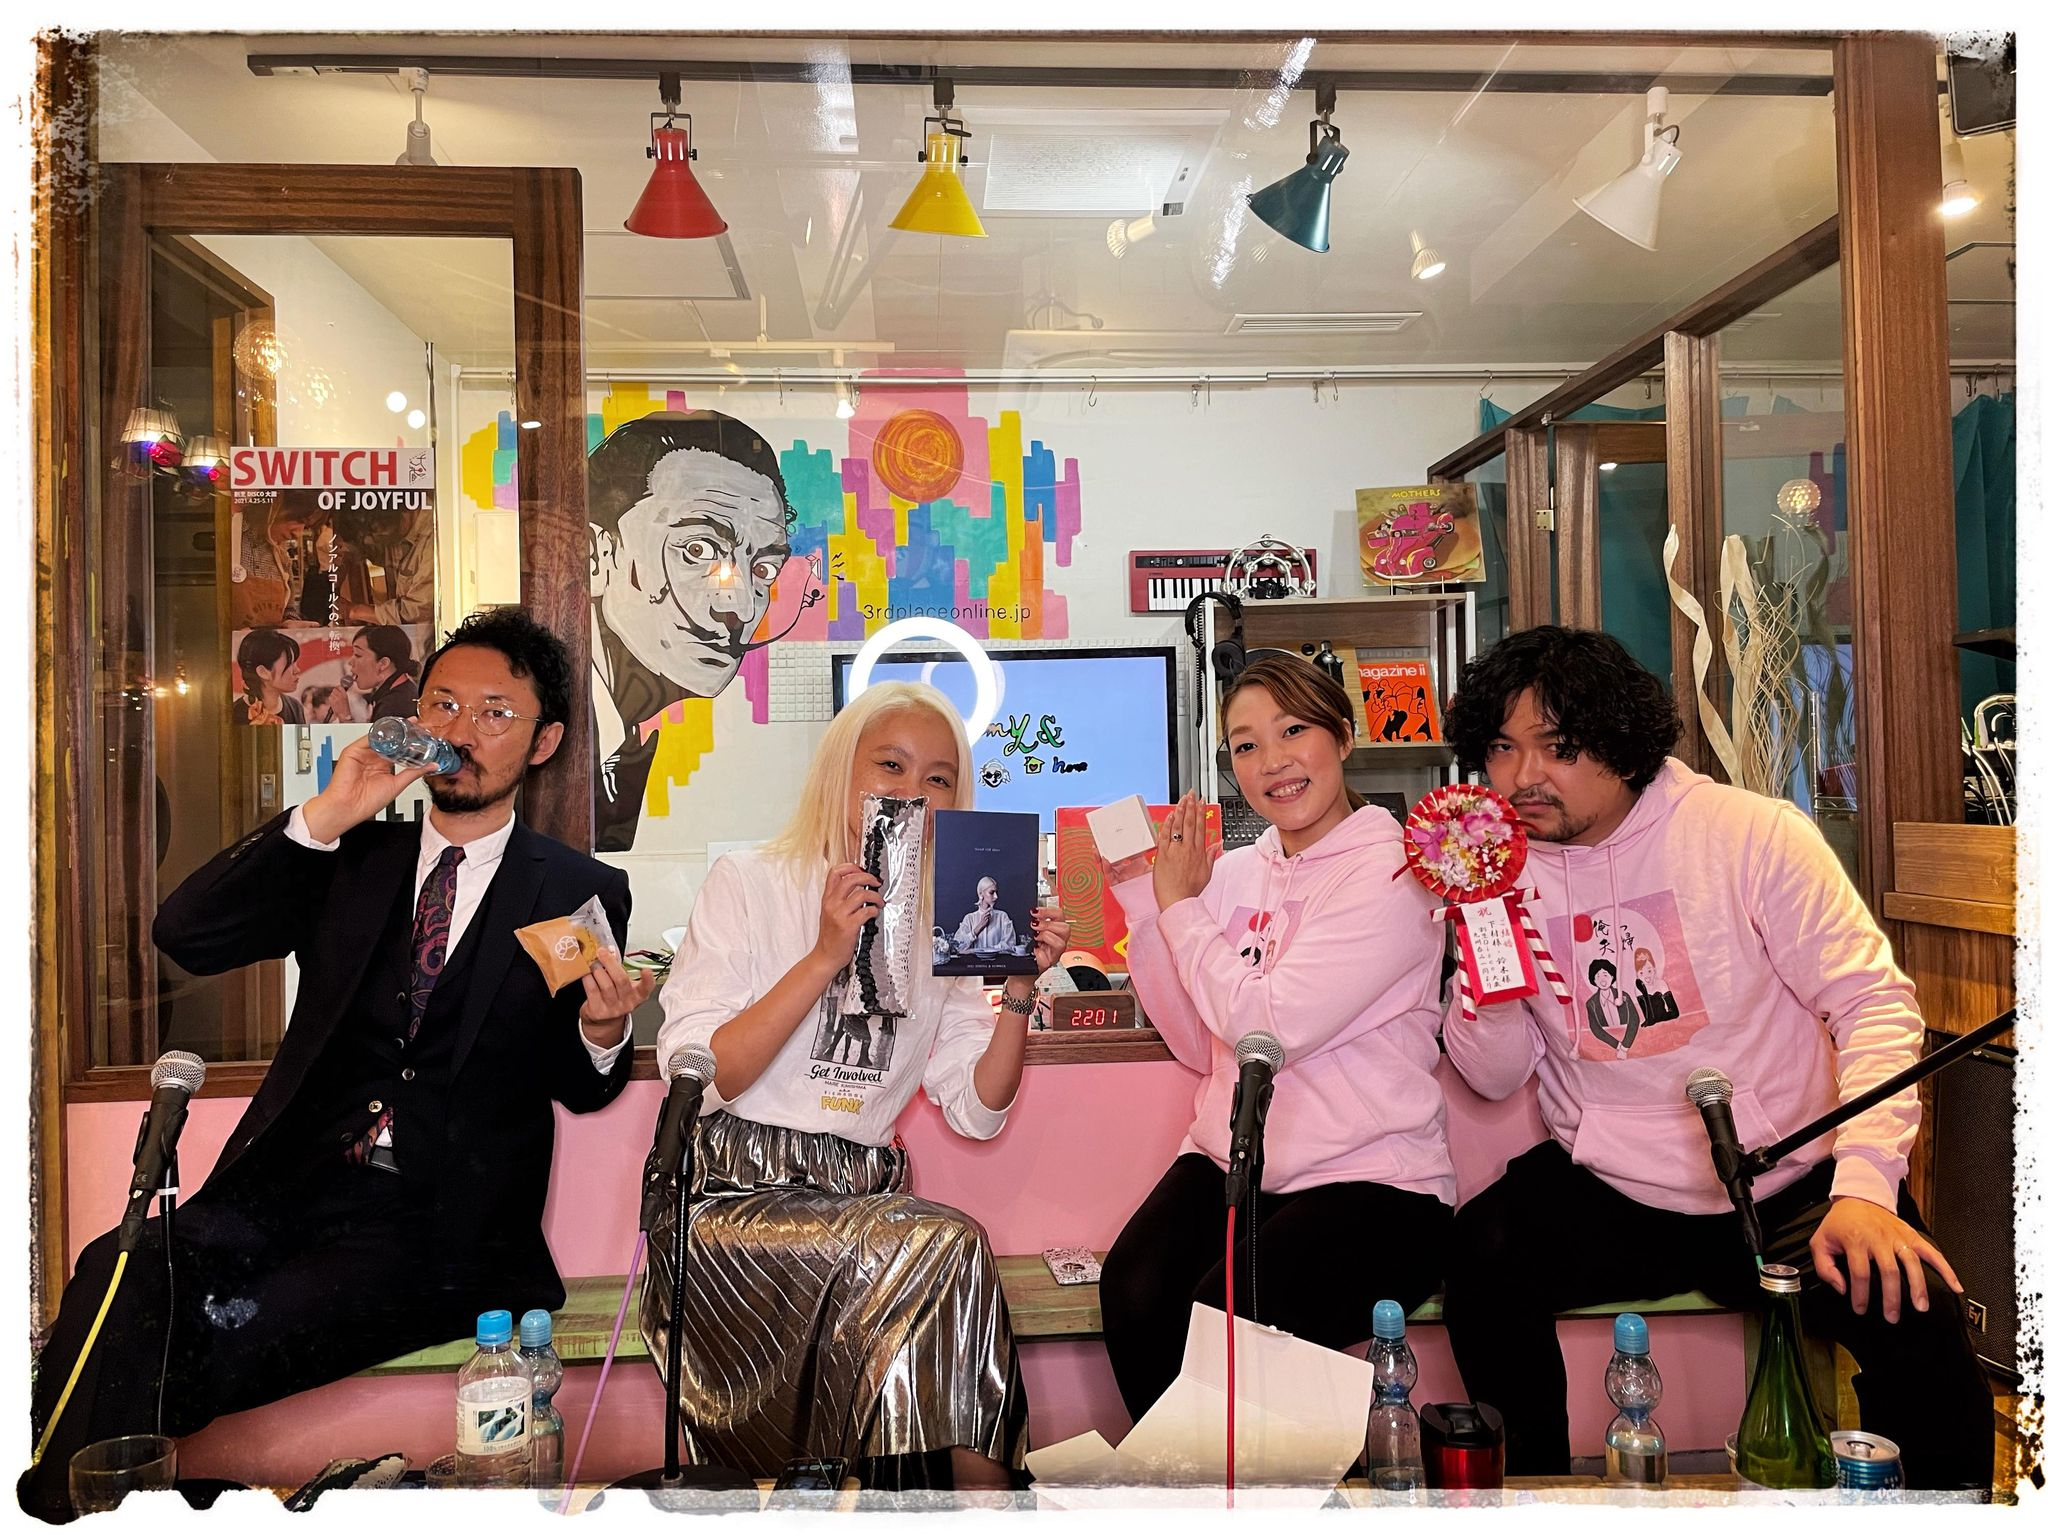 【Namy& home】新婚さんいらっしゃい!!!Guest:下村夫妻(3rdPlaceOnline)